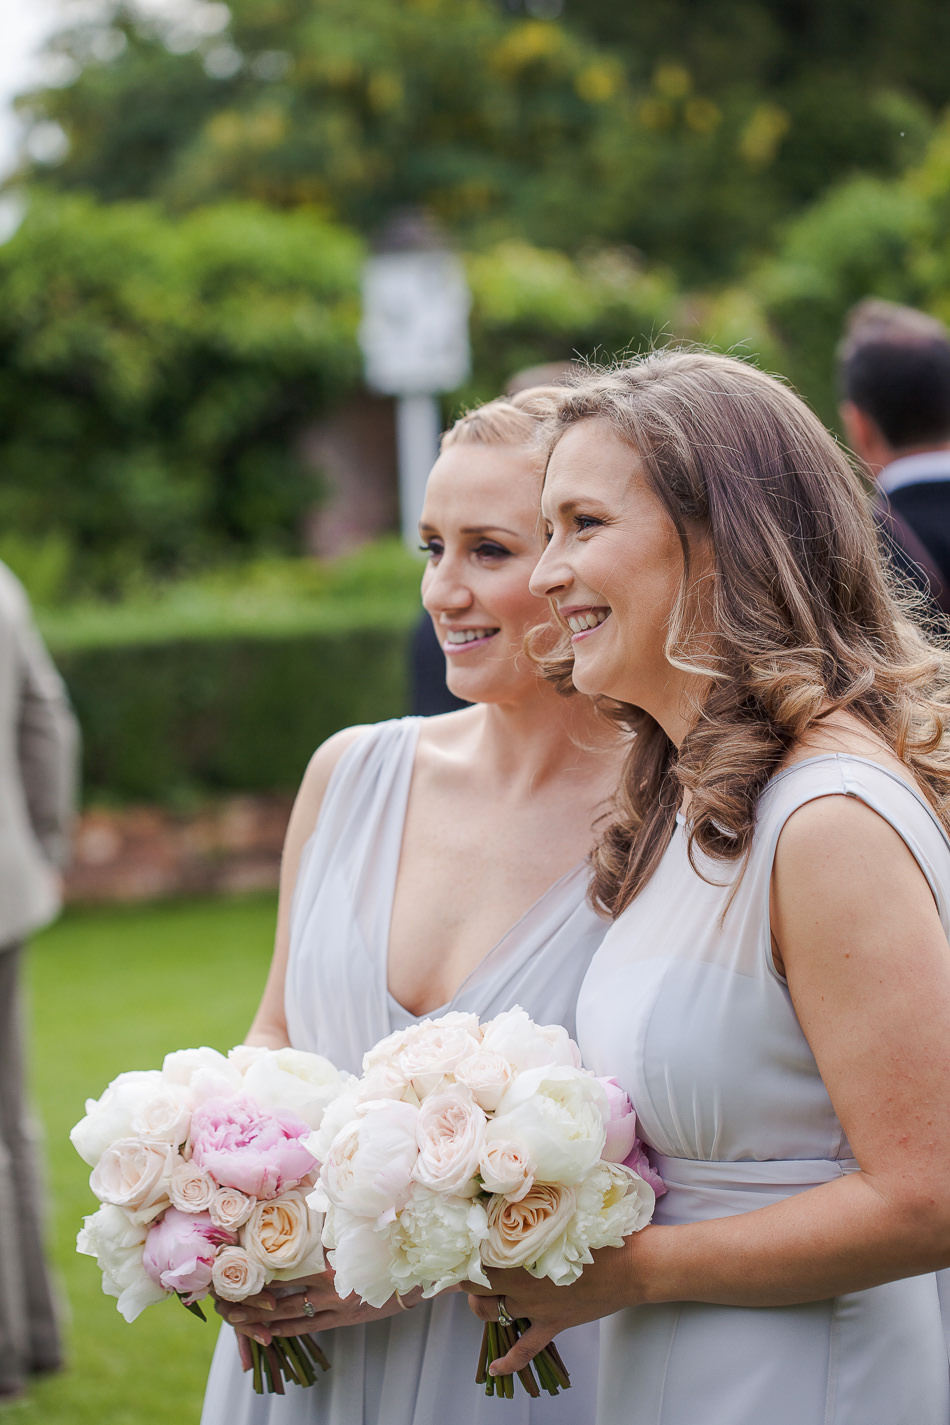 pastel-wedding-Northbrook-Park-wedding-coordination-surrey-always-andri-marianne-taylor-photography (2)